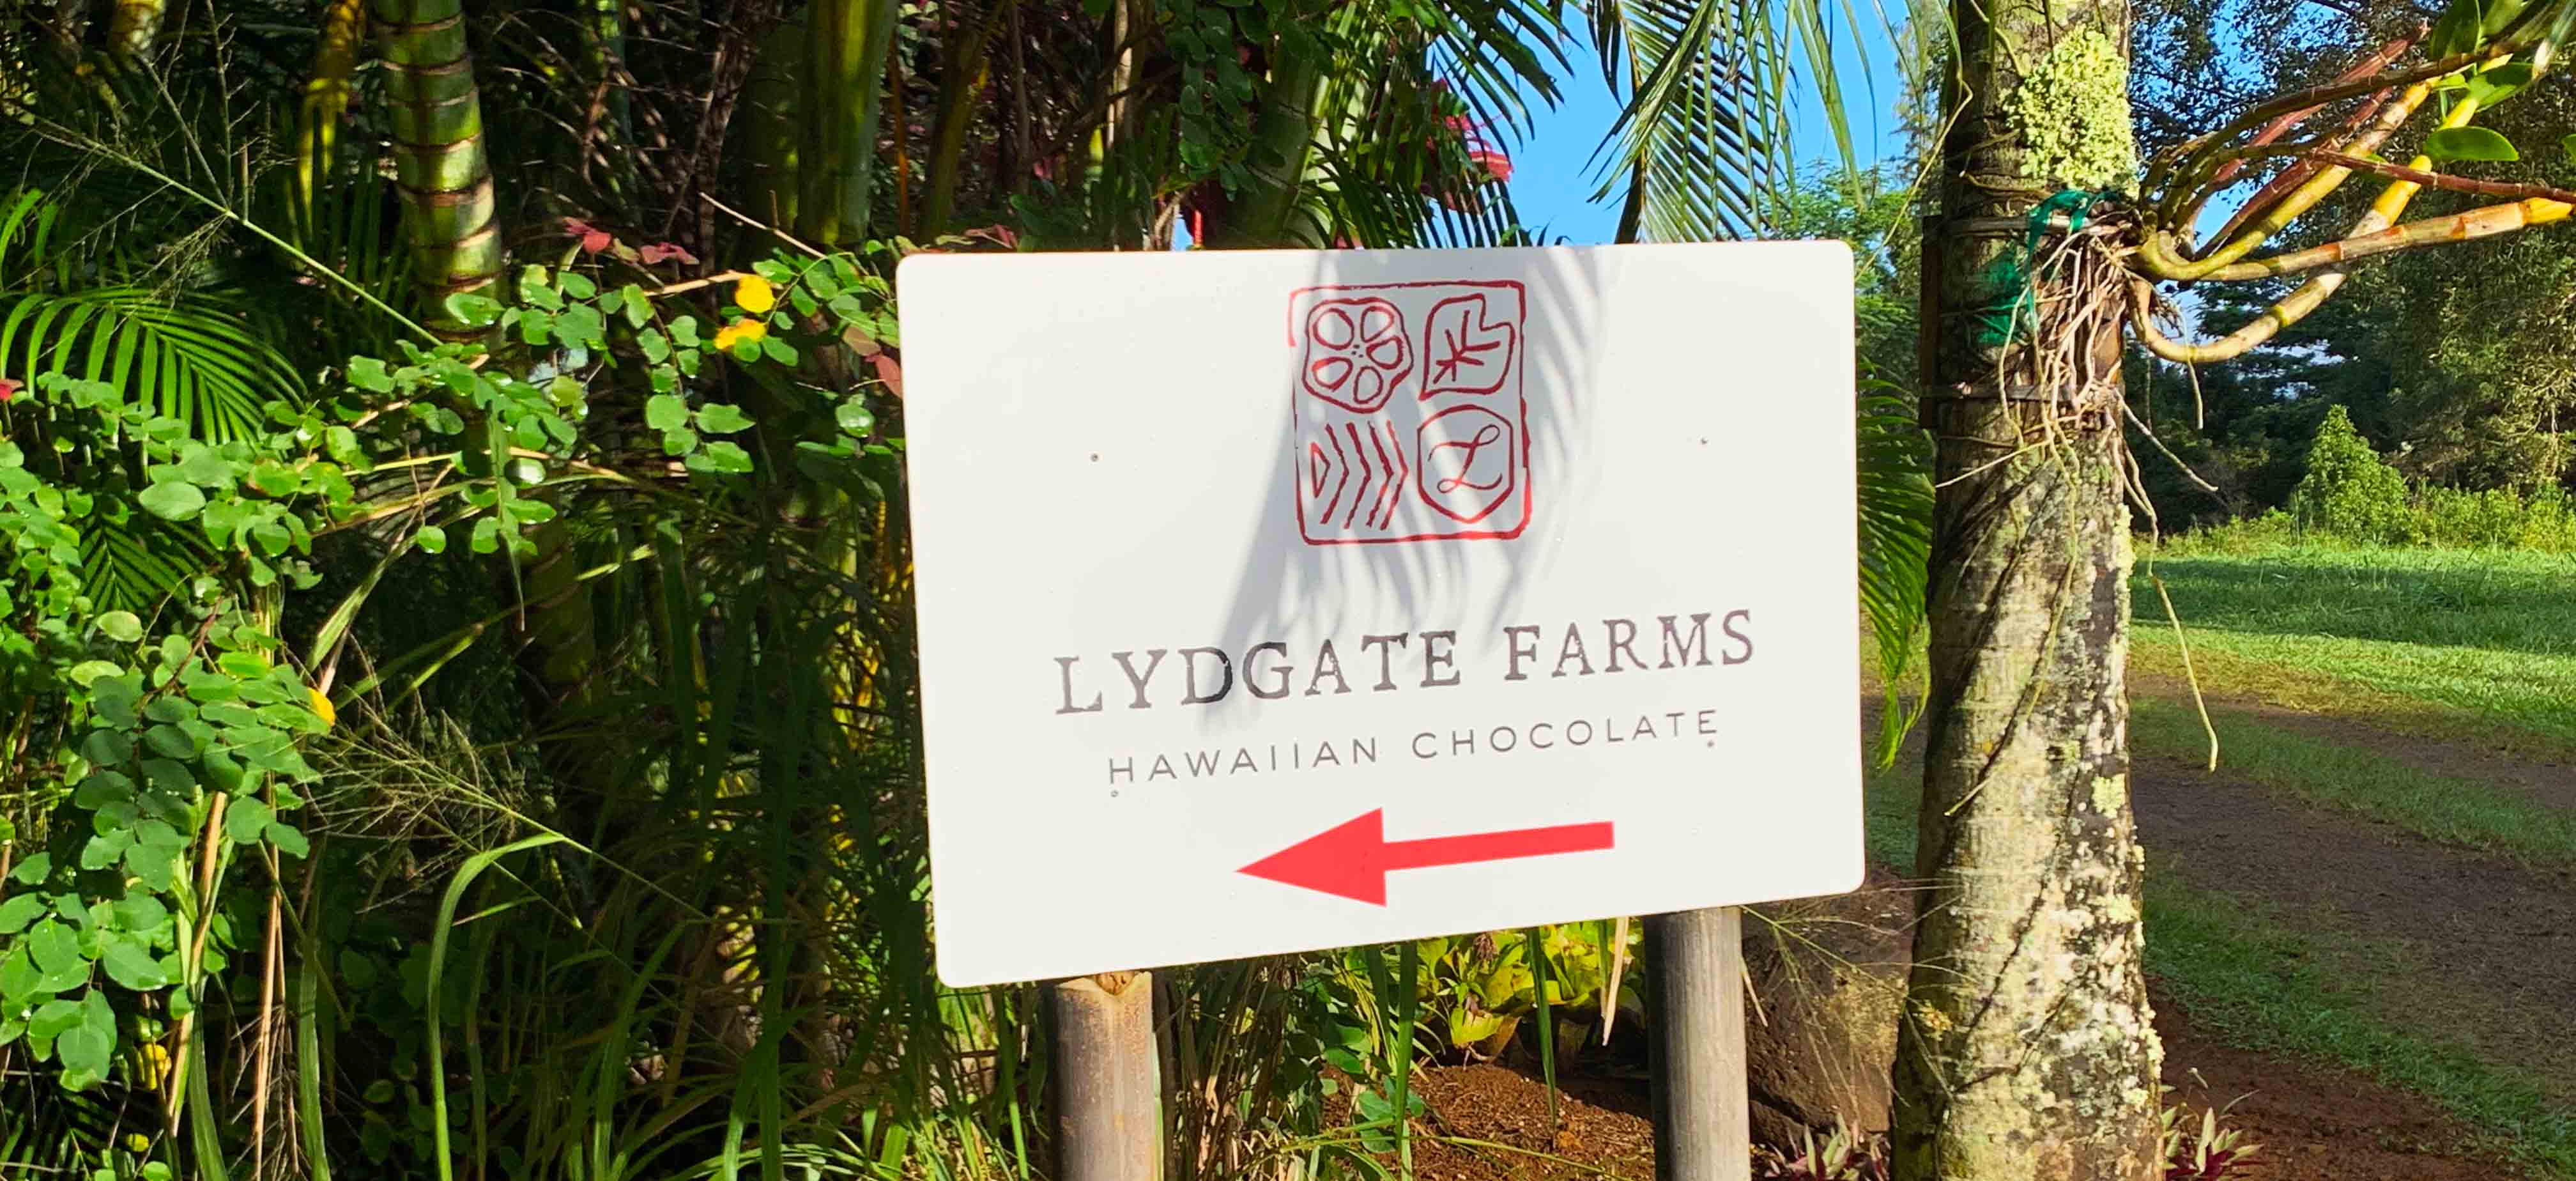 So much chocolate. And fruit. And vanilla. And honey. Lydgate Farms in Kaua'i is truly the place to taste it all.